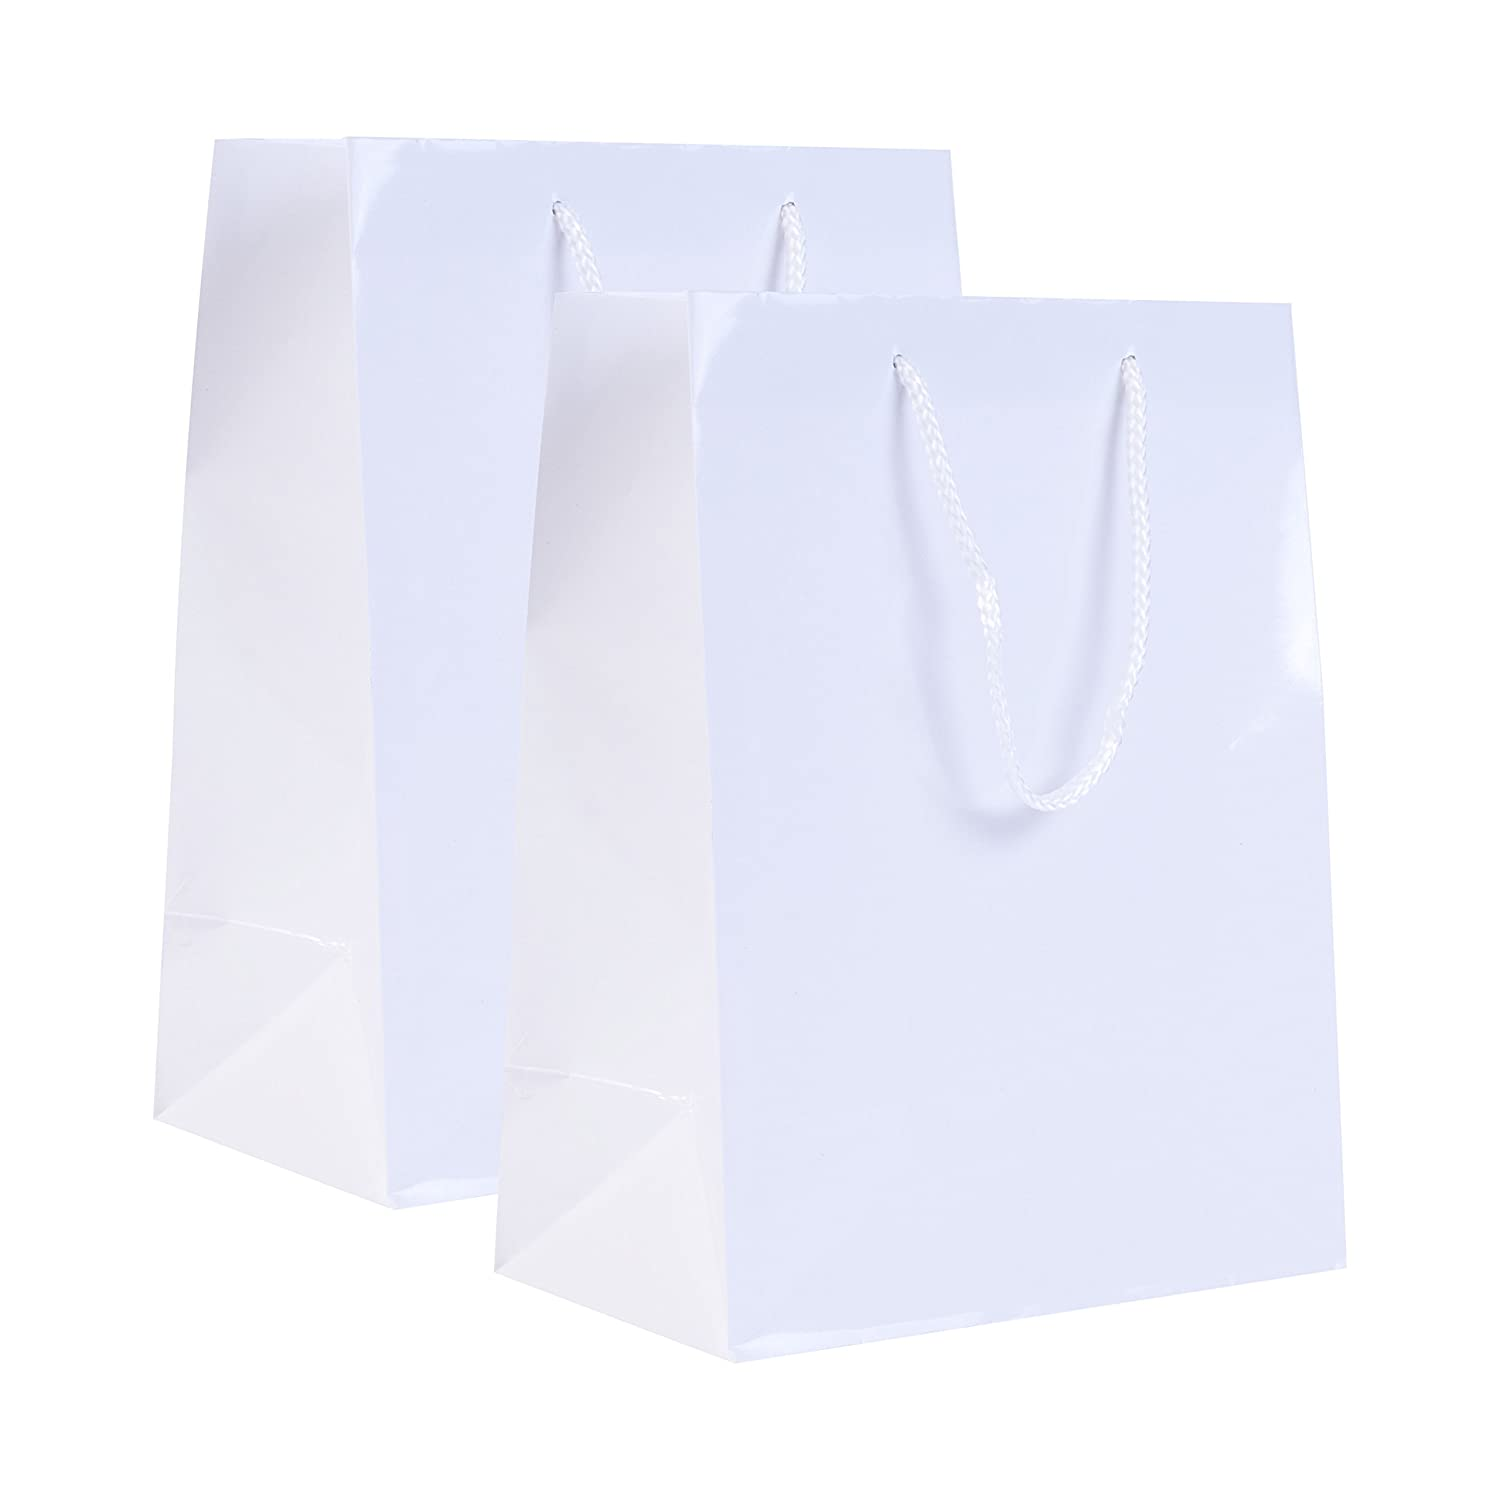 Incredible Packaging - 8' x 4.75' x 10' Small Retail Euro Tote Shopping Bags - Heavy Duty 157 GSM - Original Style Paper - Perfect for Merchandise, Retail, Party, Gift Bags. (White Gloss, 10 Bags)